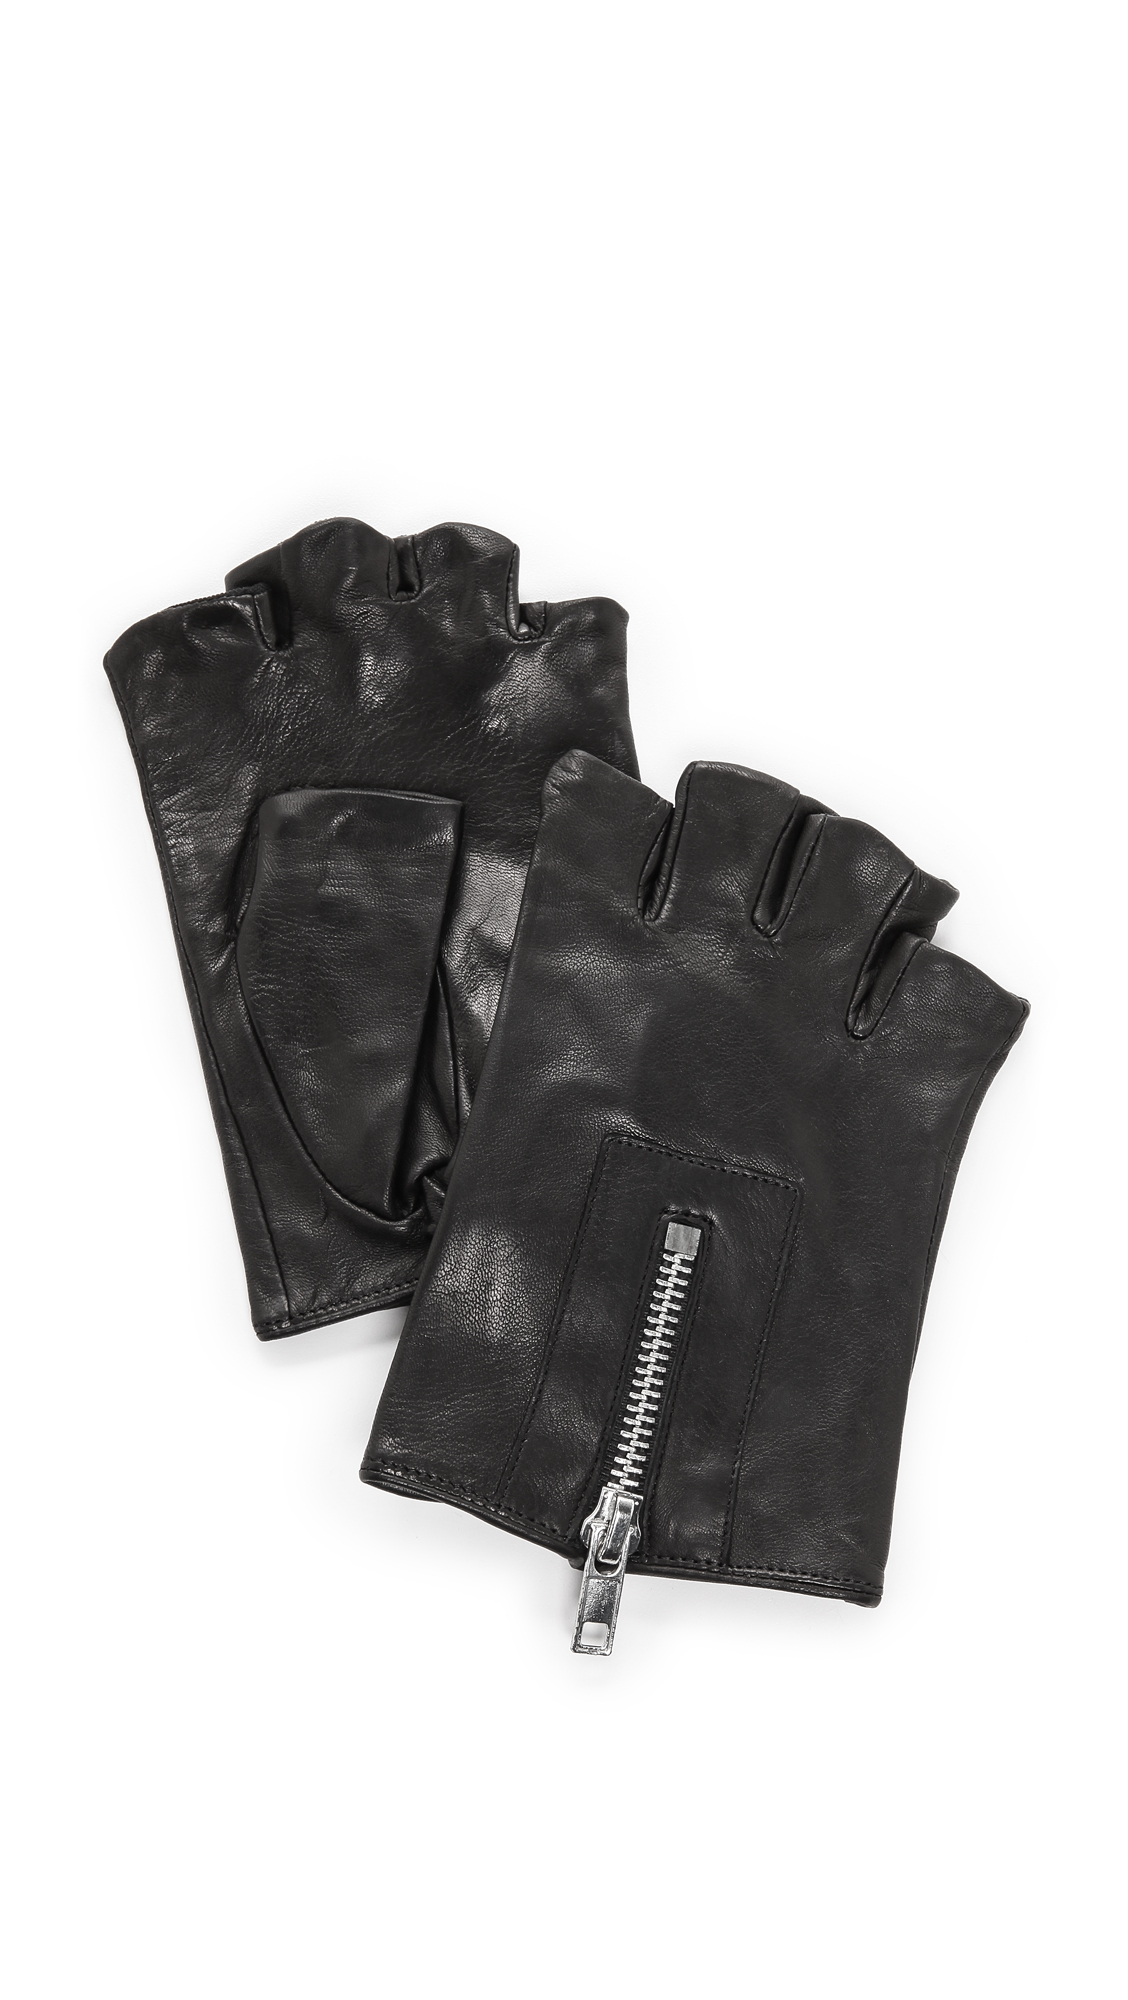 Shorty leather driving gloves fingerless - Gallery